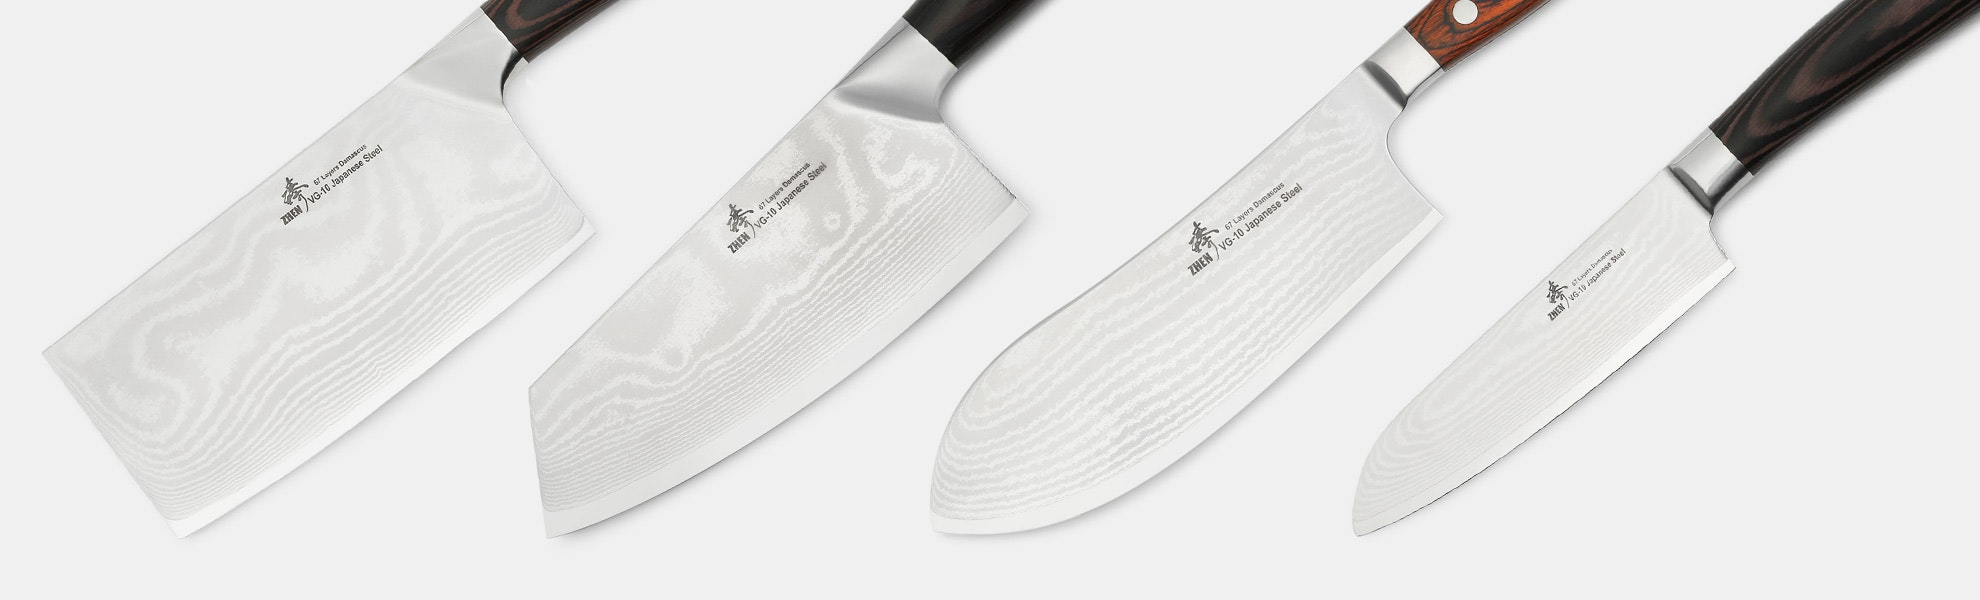 Zhen VG-10 Damascus Kitchen Knives